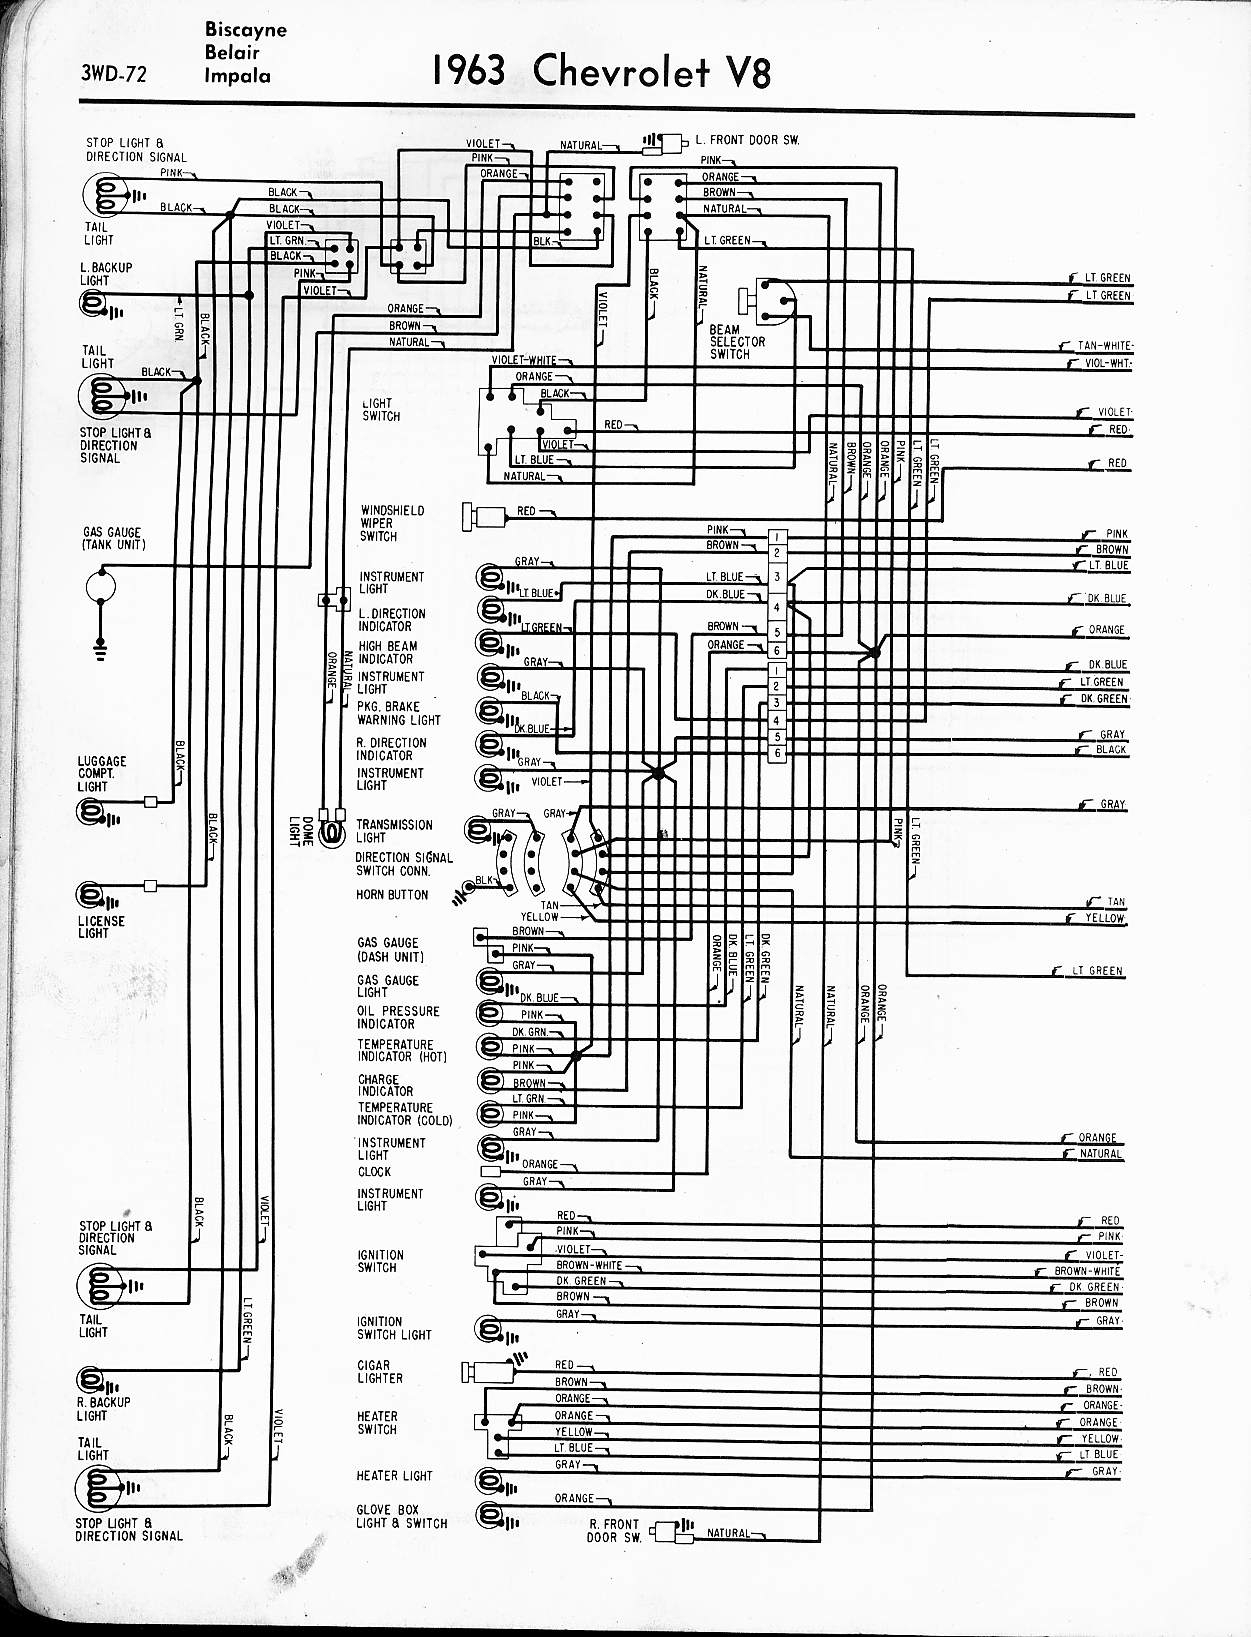 Collection Of Chevy Impala Wiring Diagram Download